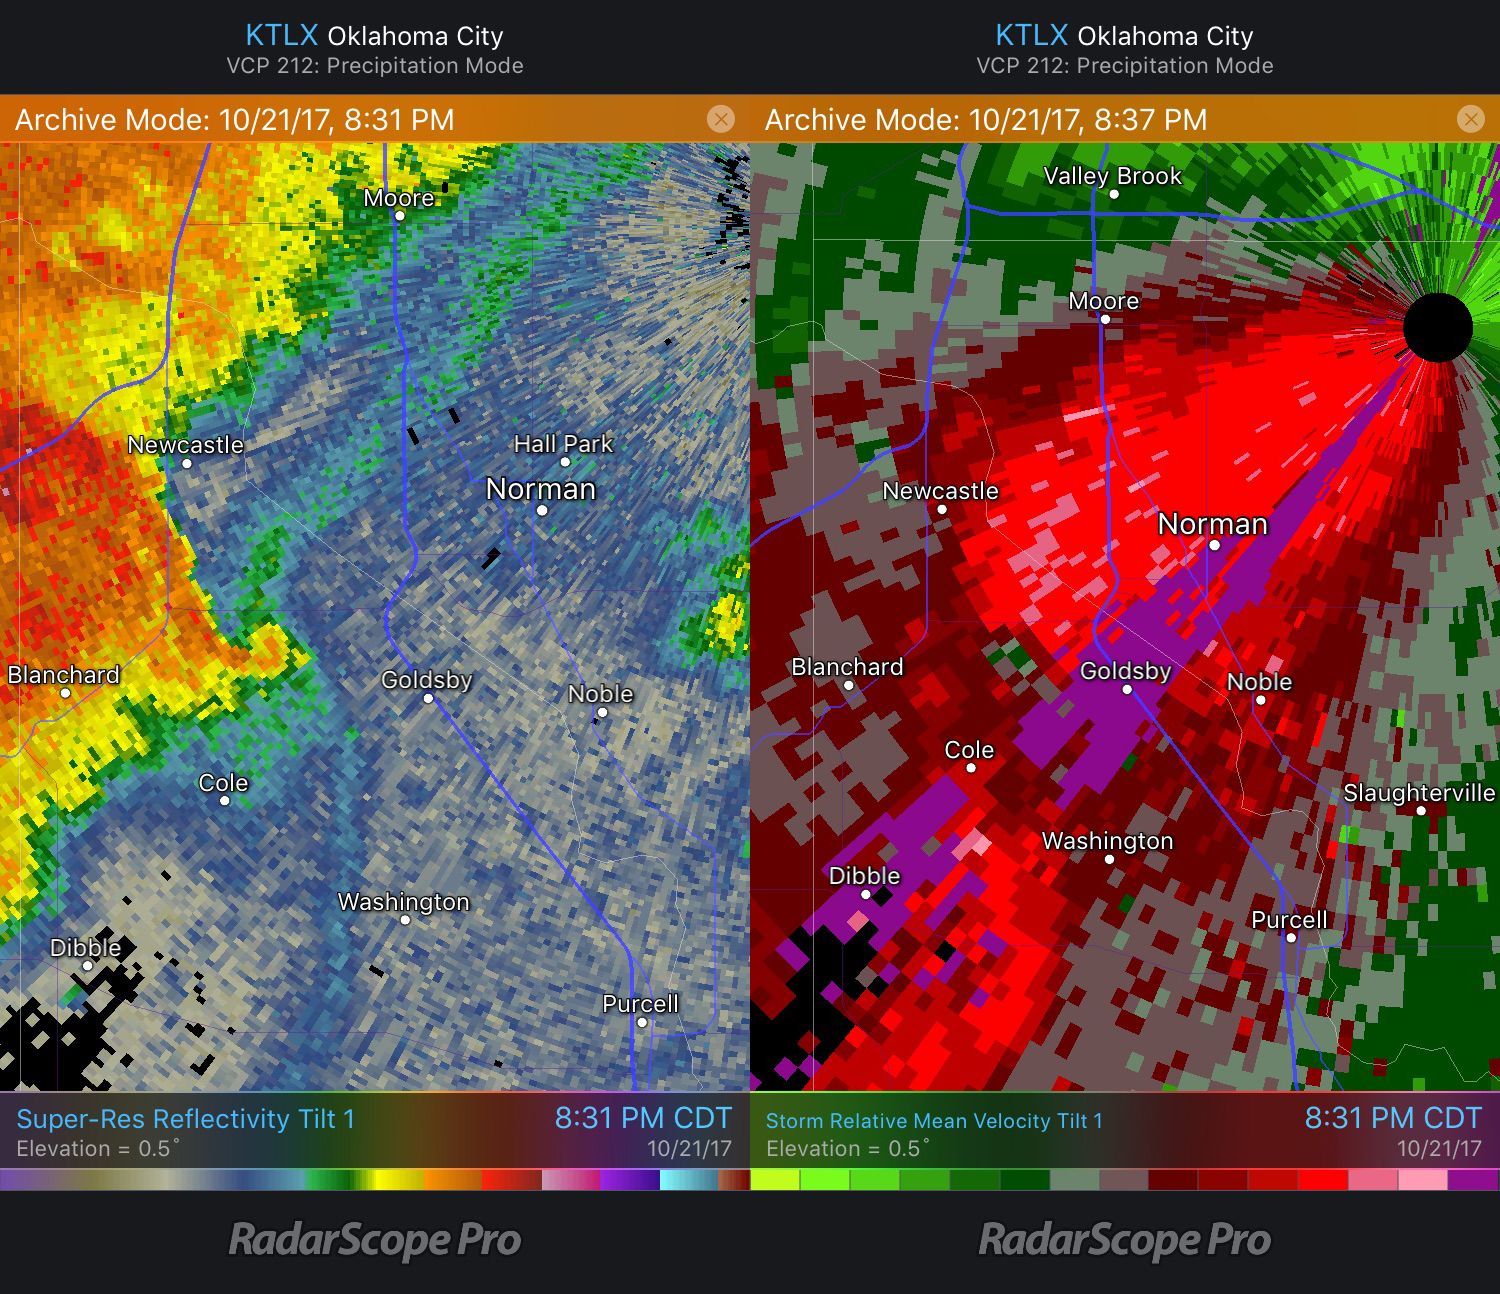 RadarScope: Comparing Tornado Signatures from NEXRAD and TDWR